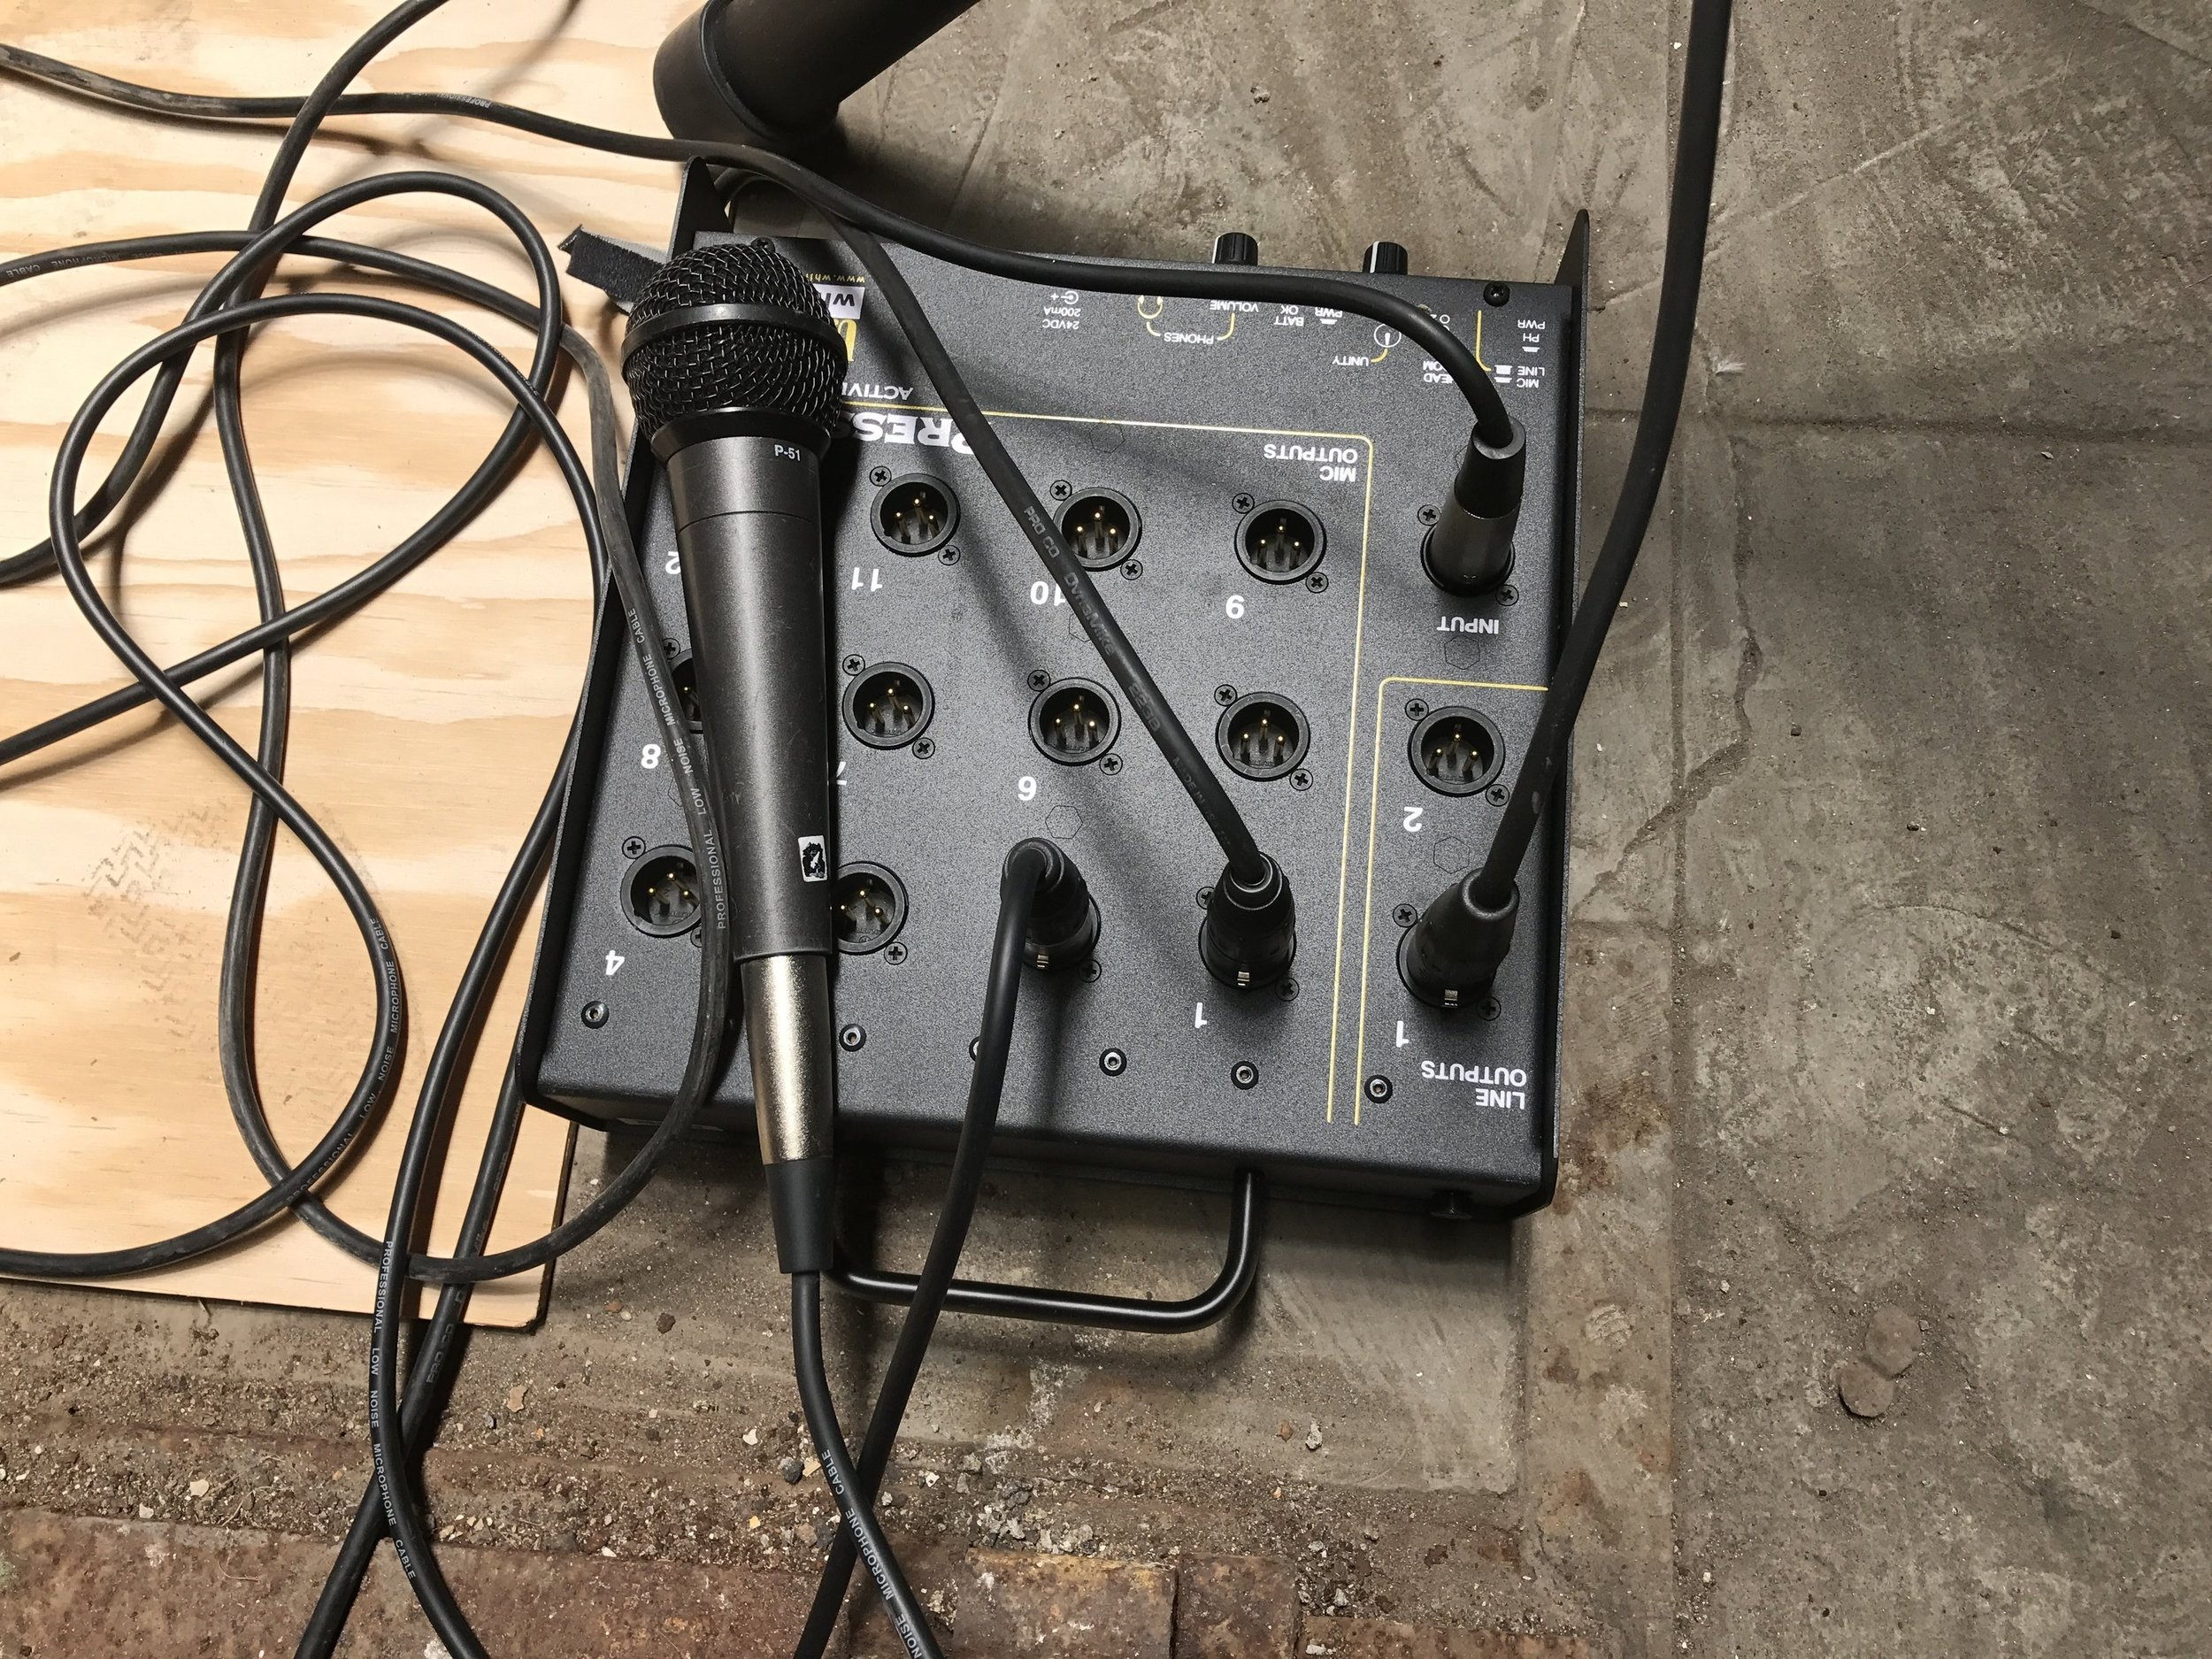 This is a mult box. The microphone cable sends the audio signal into the box and that signal is sent out through all the various outlets so several news teams can record at once.